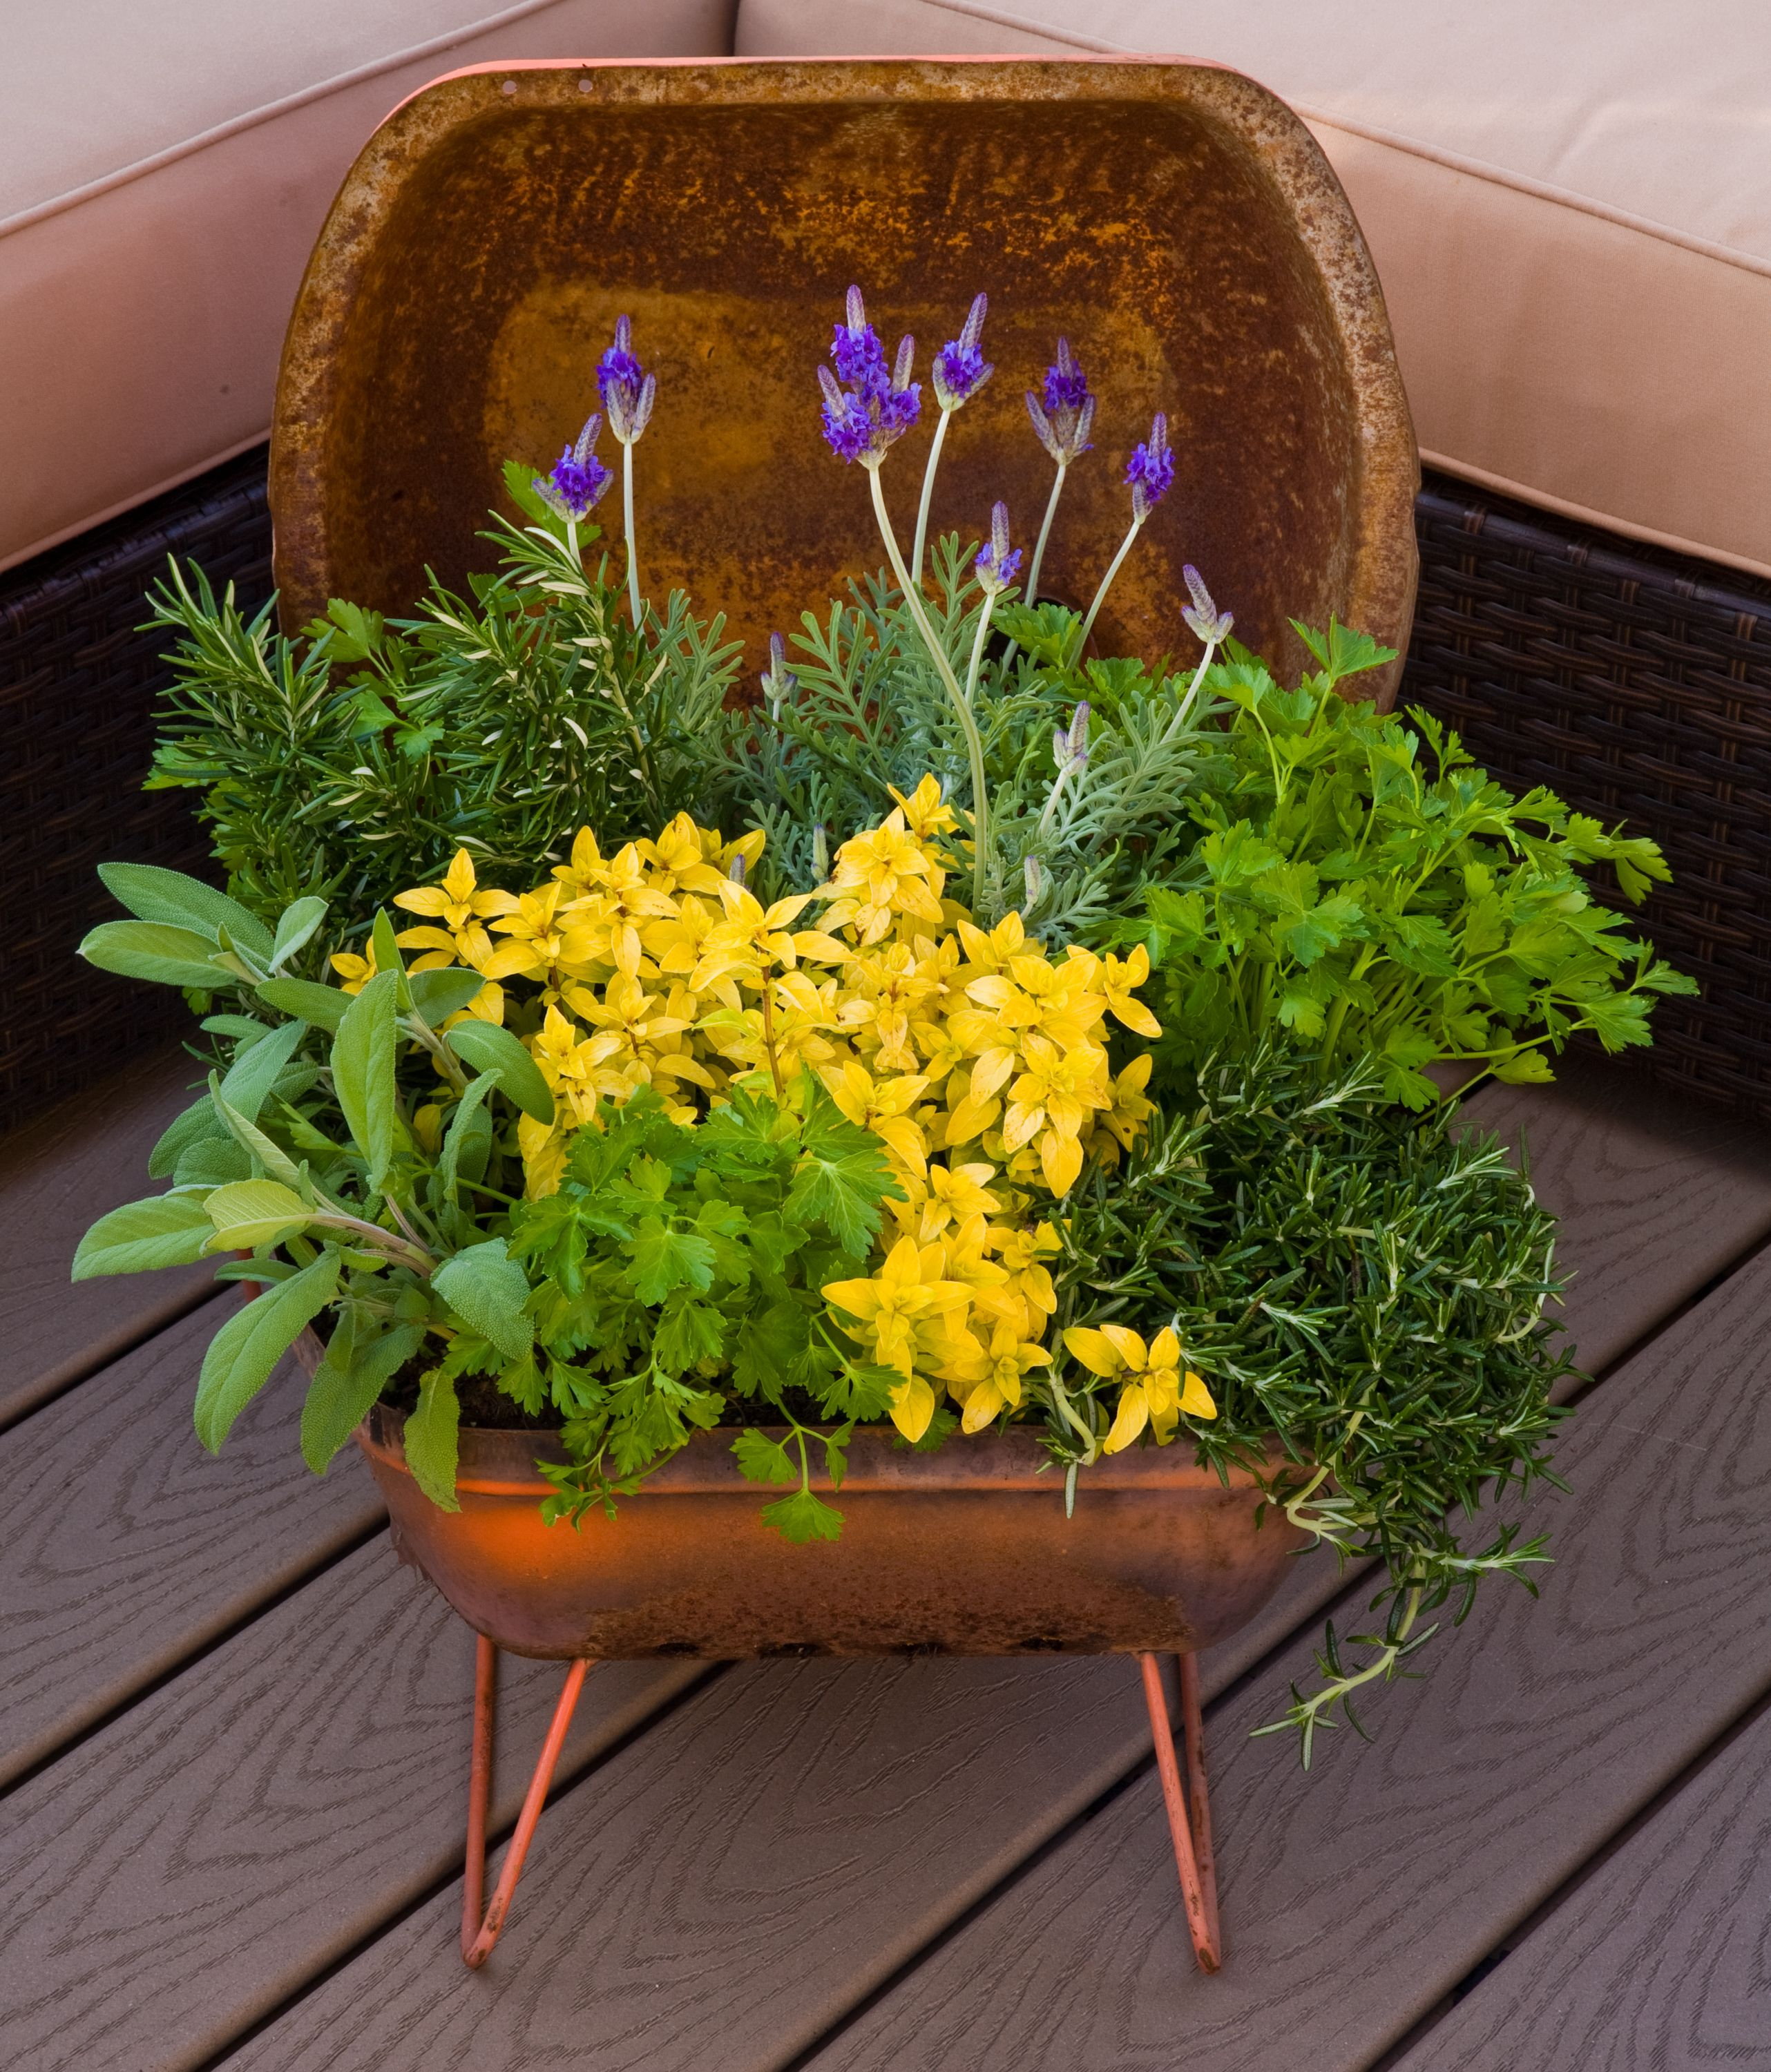 recycled portable table top grill to container herb garden